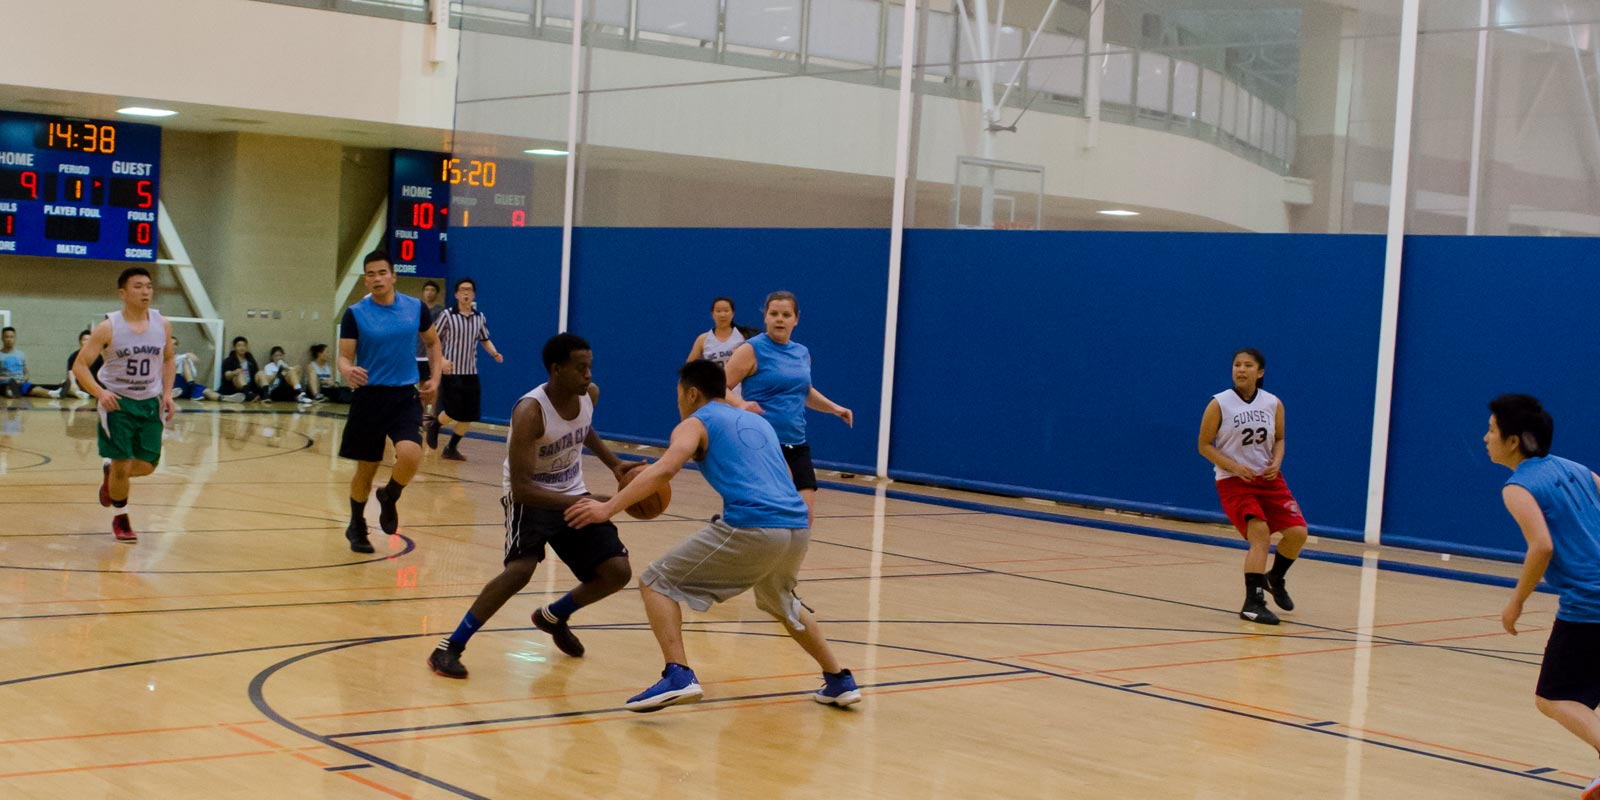 UC Davis students play basketball, one of the sports in the Res Hall Cup Competition